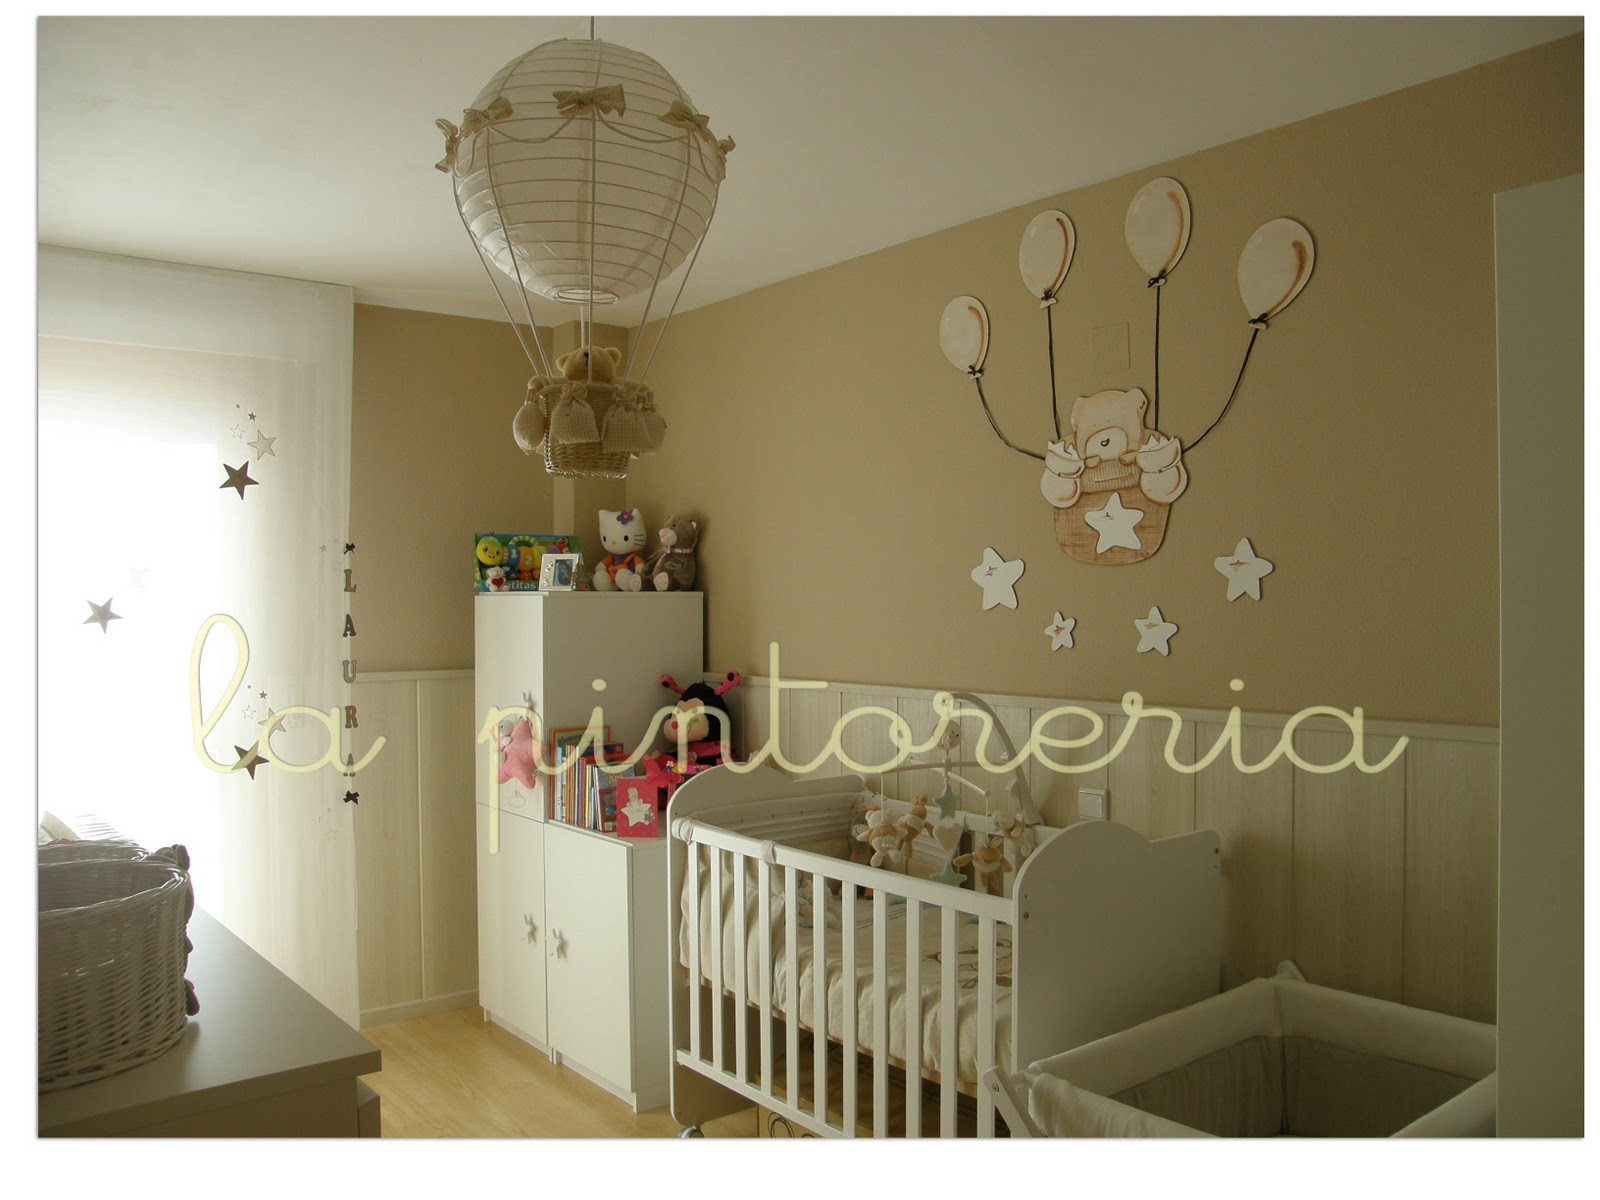 des murs enchant s decoration chambre bebe avec sticker. Black Bedroom Furniture Sets. Home Design Ideas